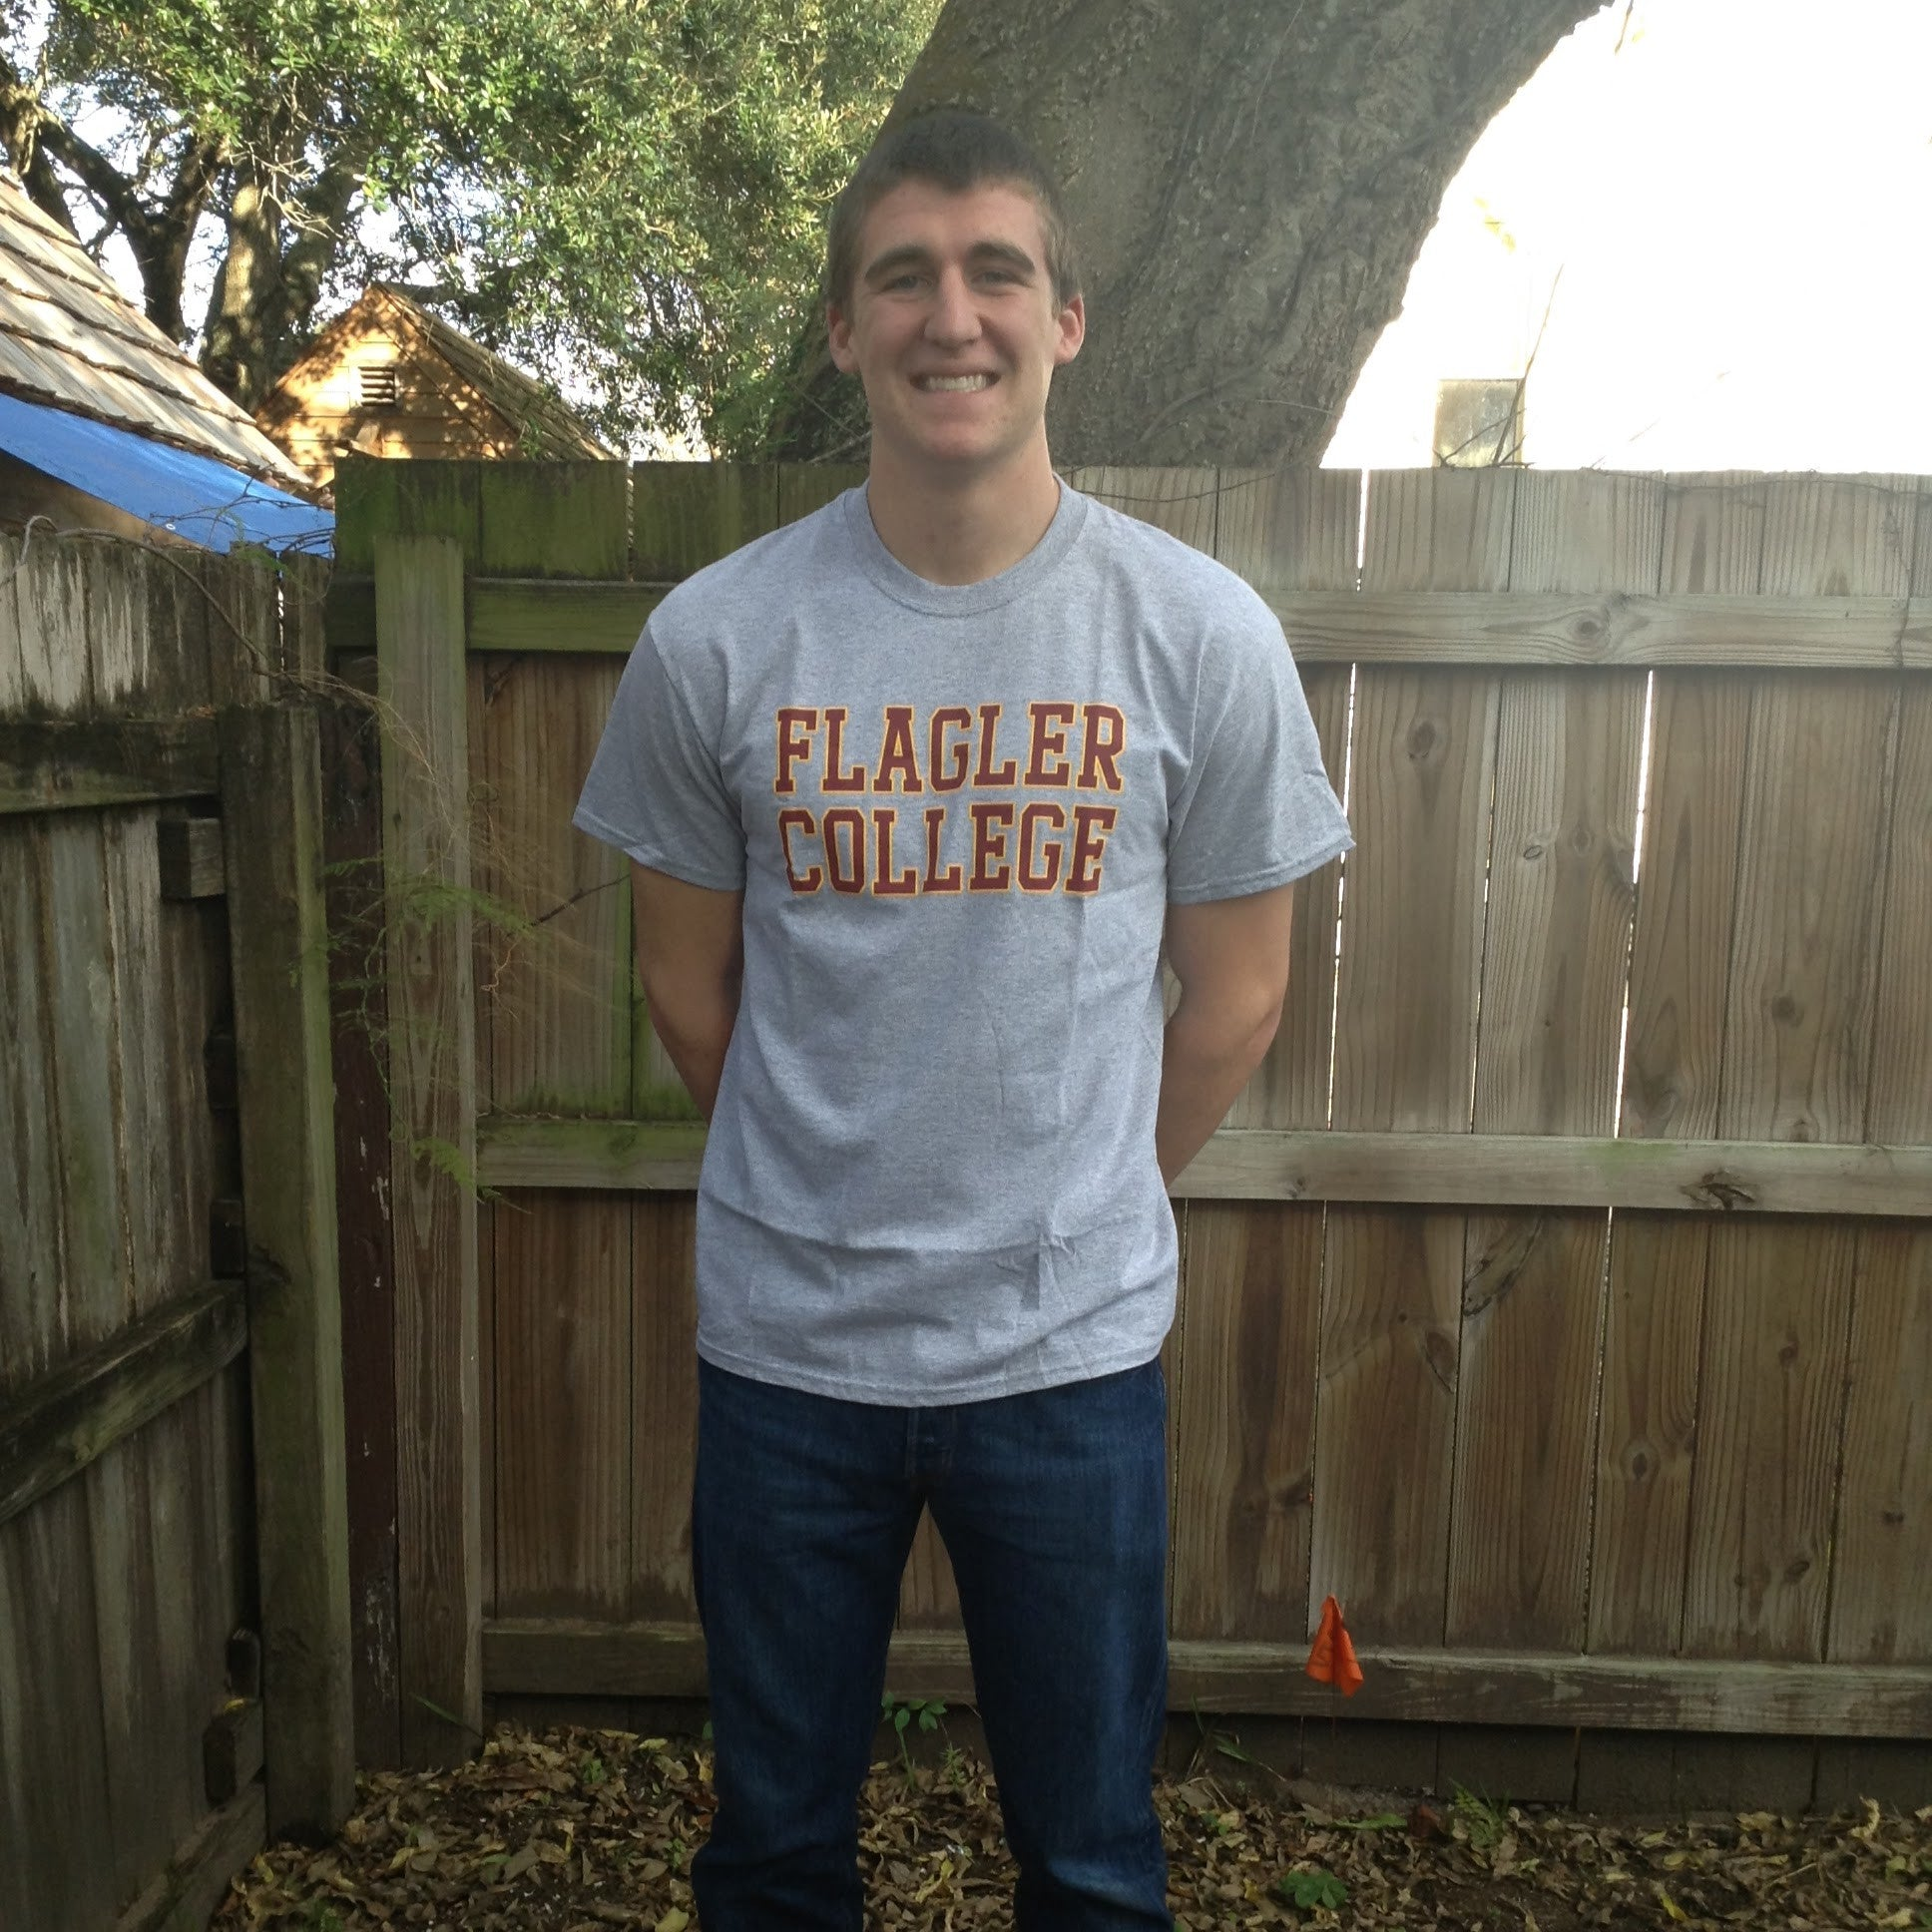 Official Flagler College T-Shirt